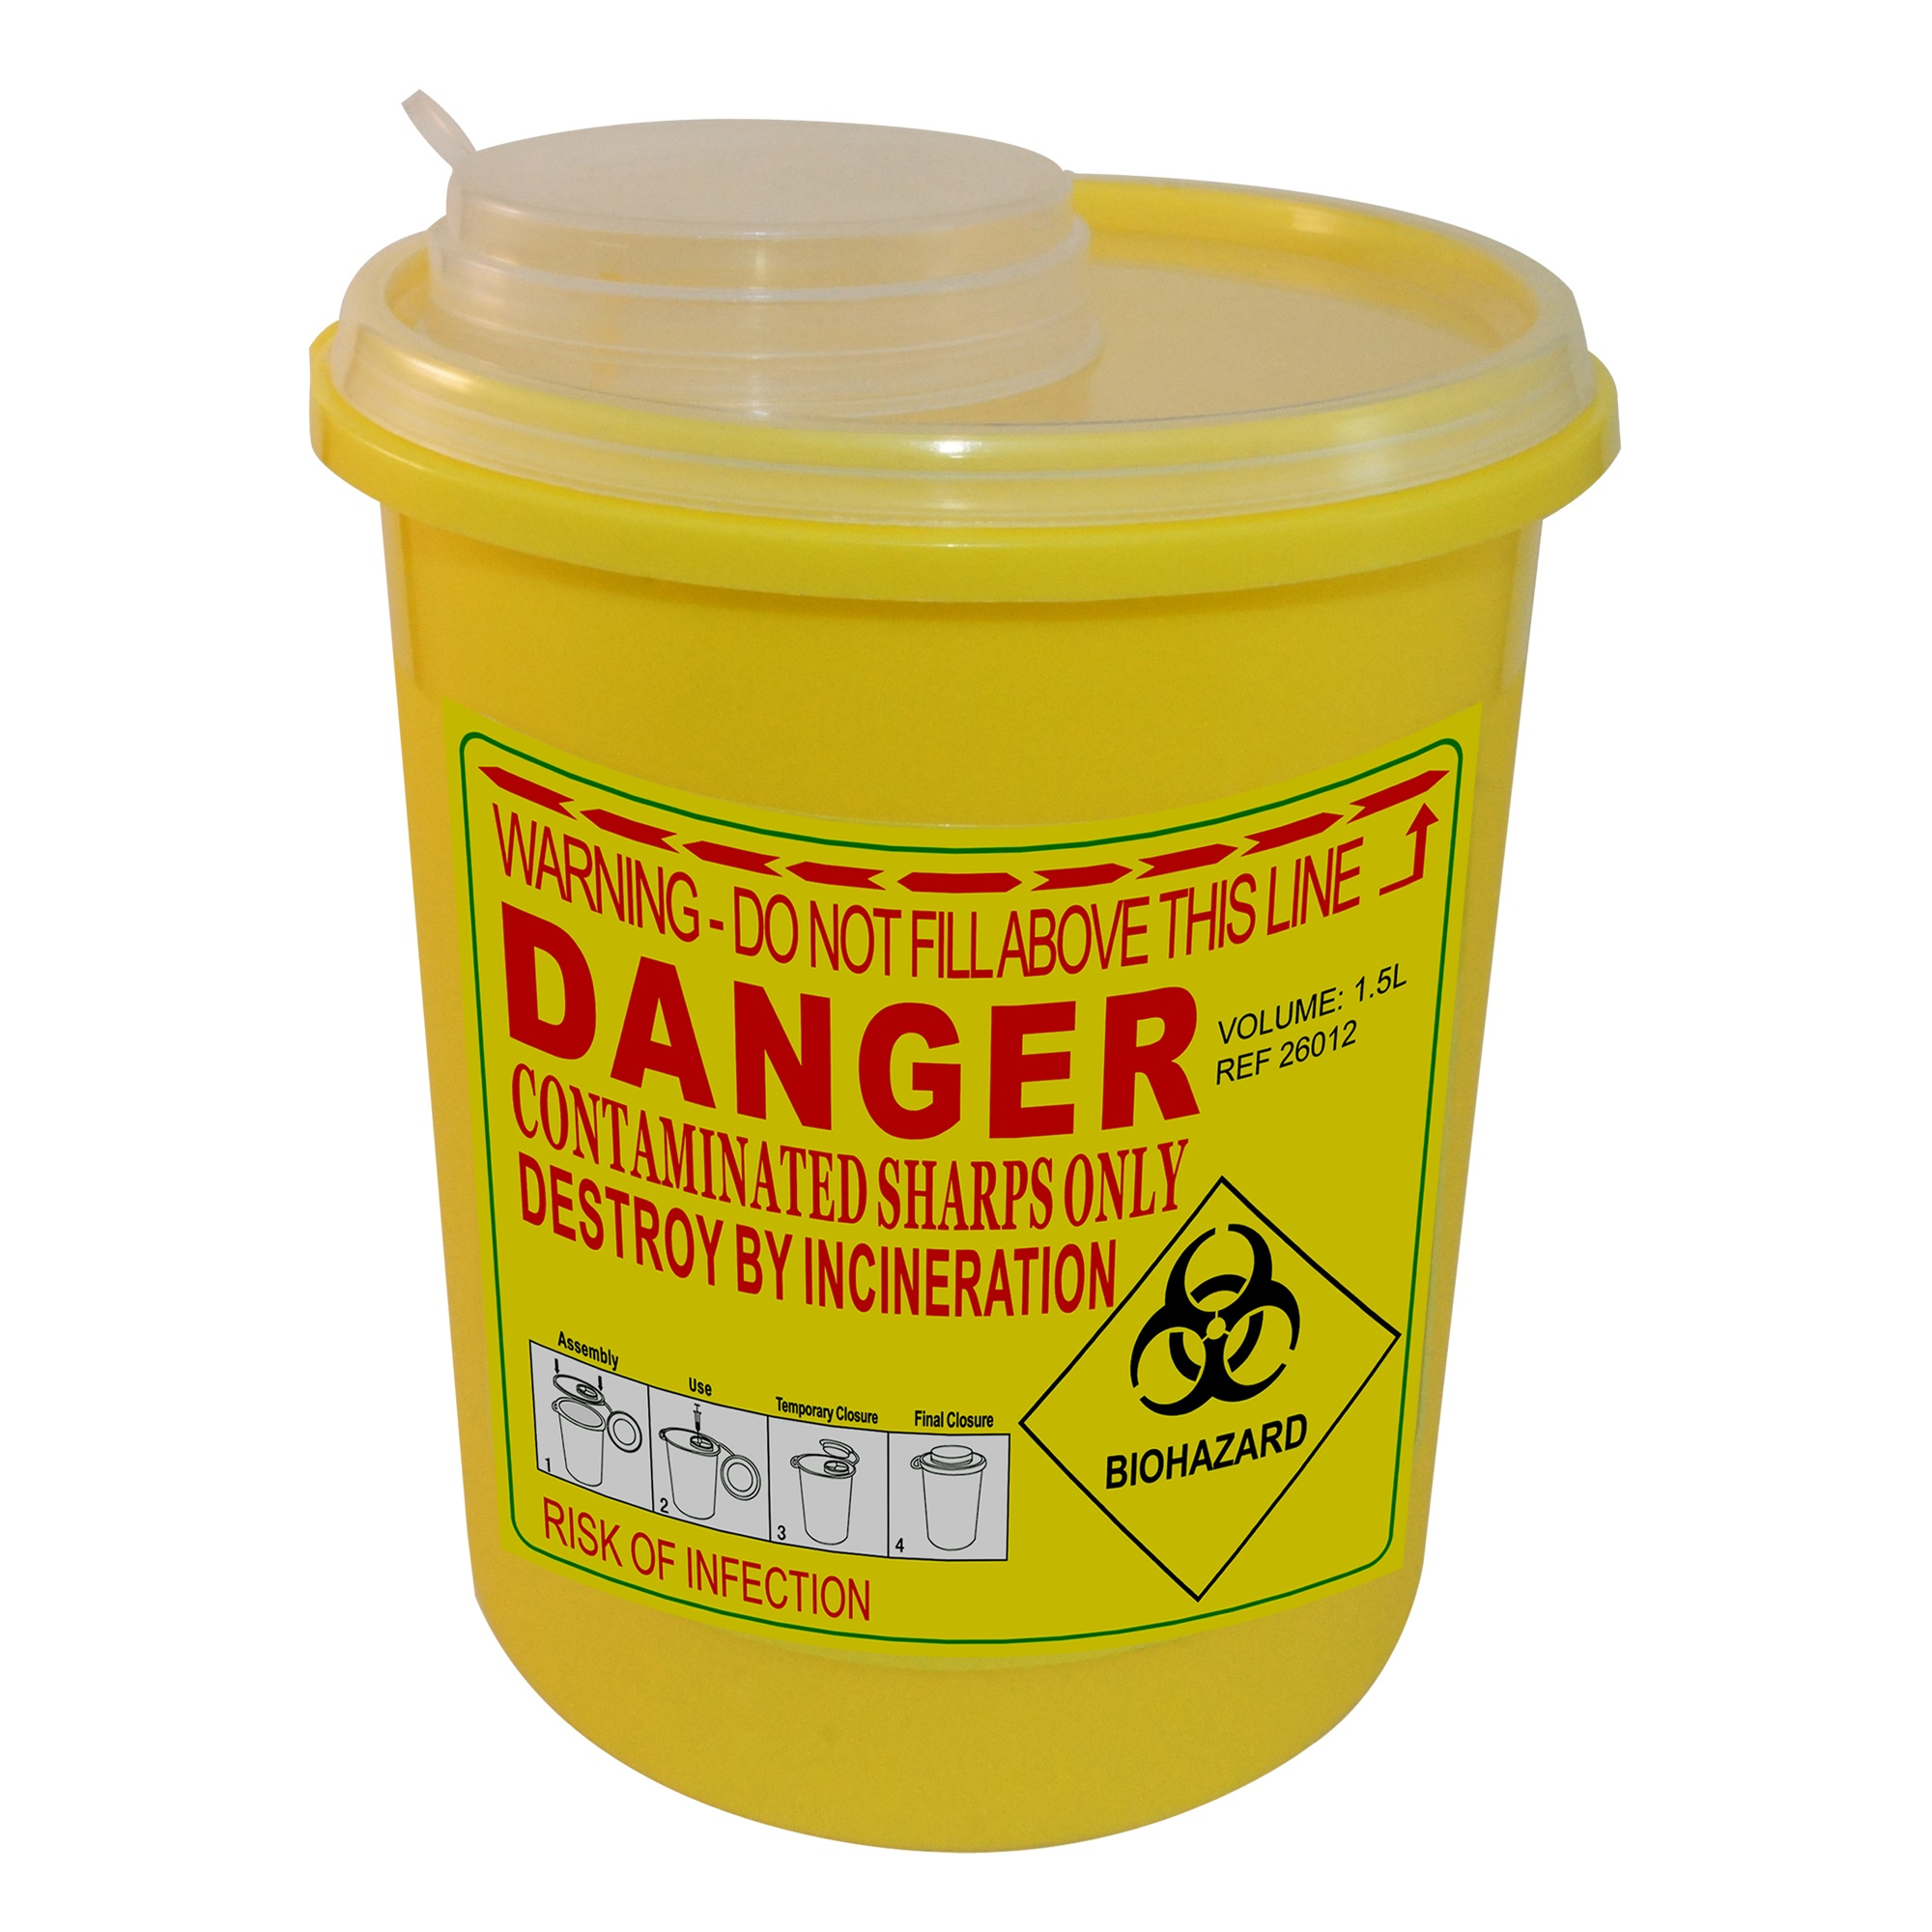 Disposable sharps container Image